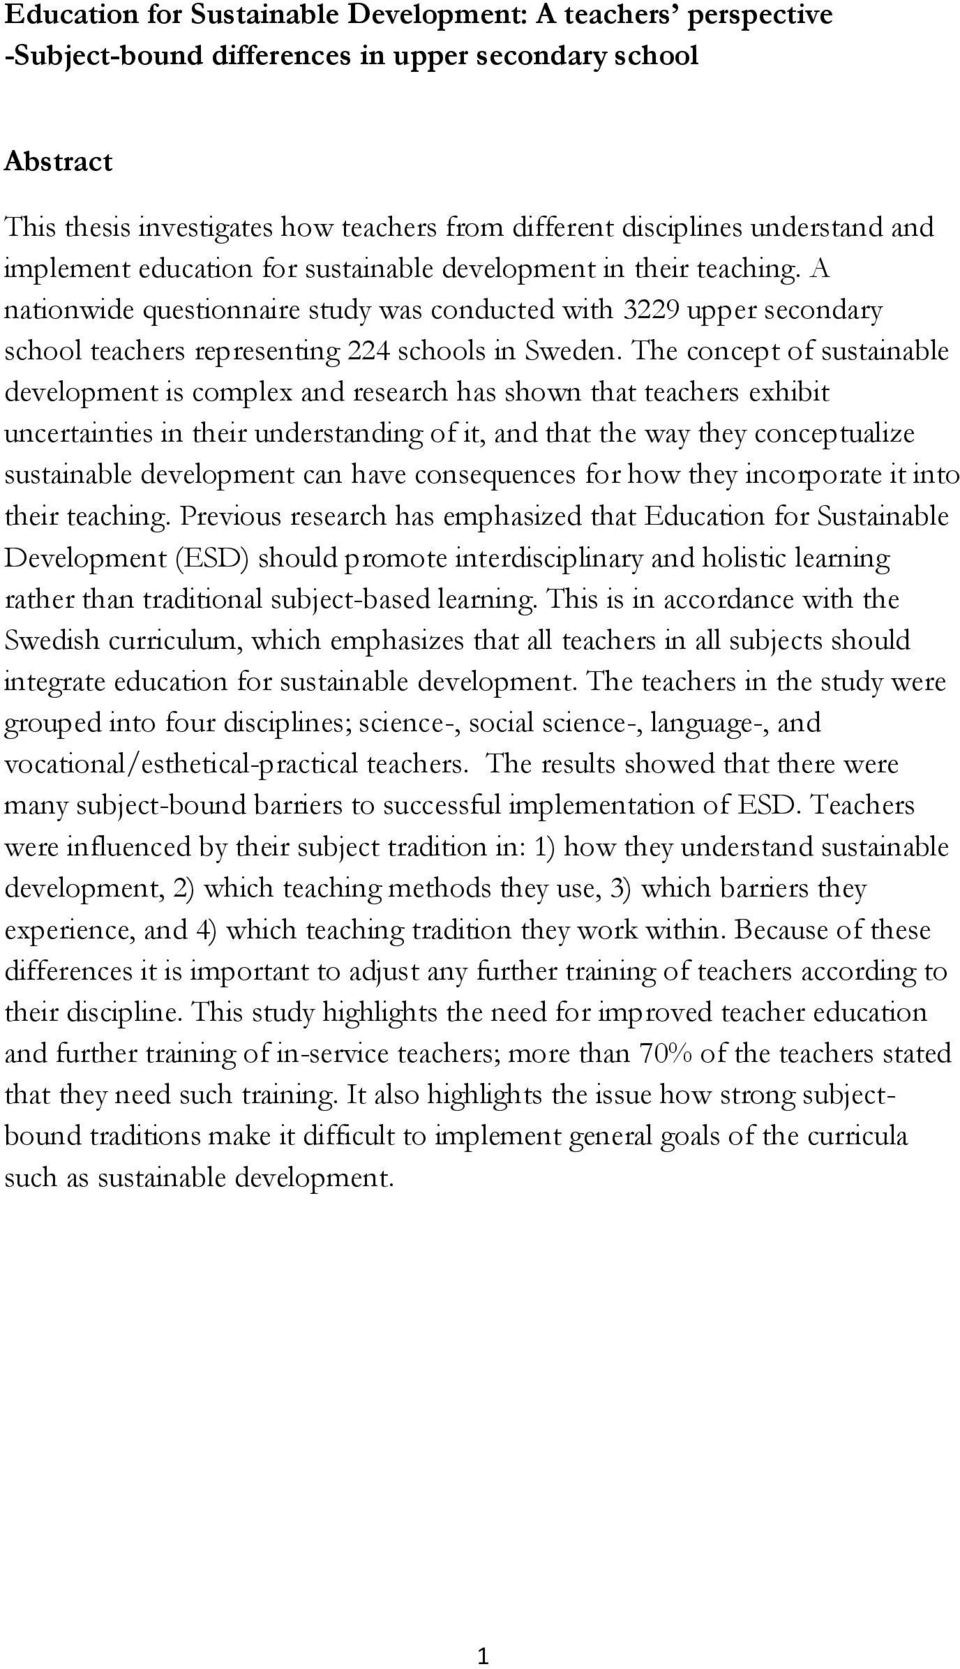 The concept of sustainable development is complex and research has shown that teachers exhibit uncertainties in their understanding of it, and that the way they conceptualize sustainable development